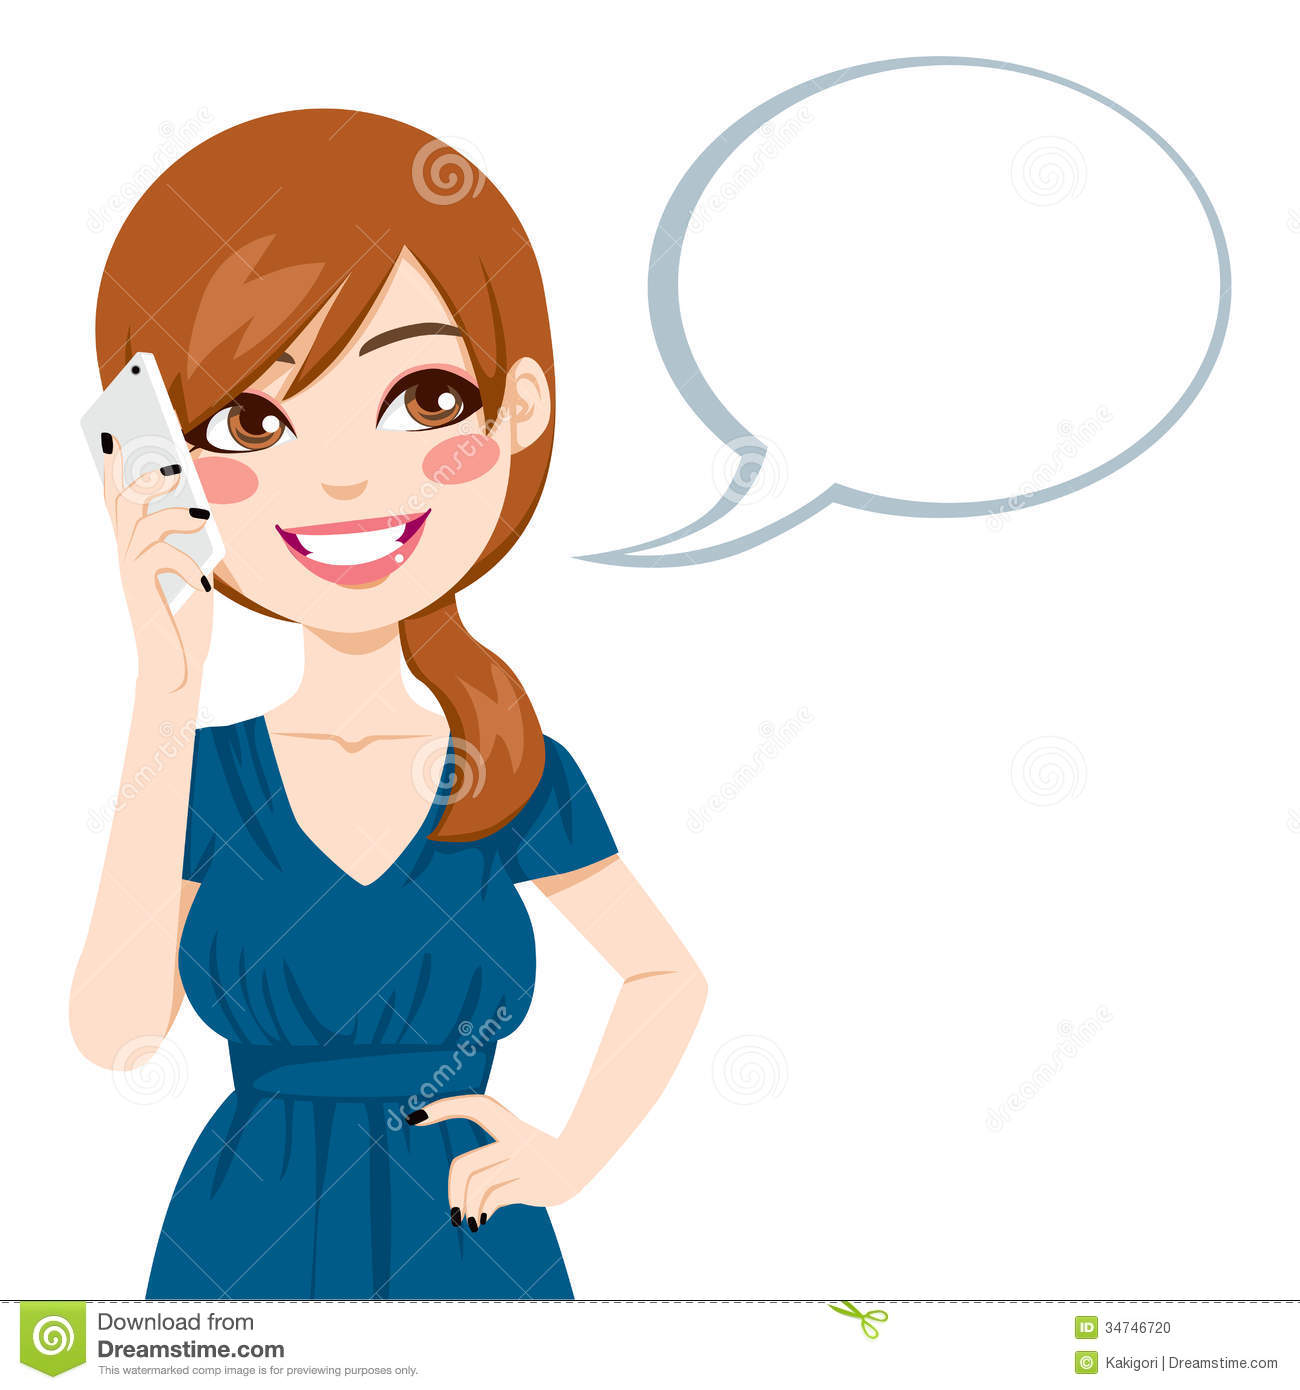 Girl on phone lady. Cellphone clipart woman